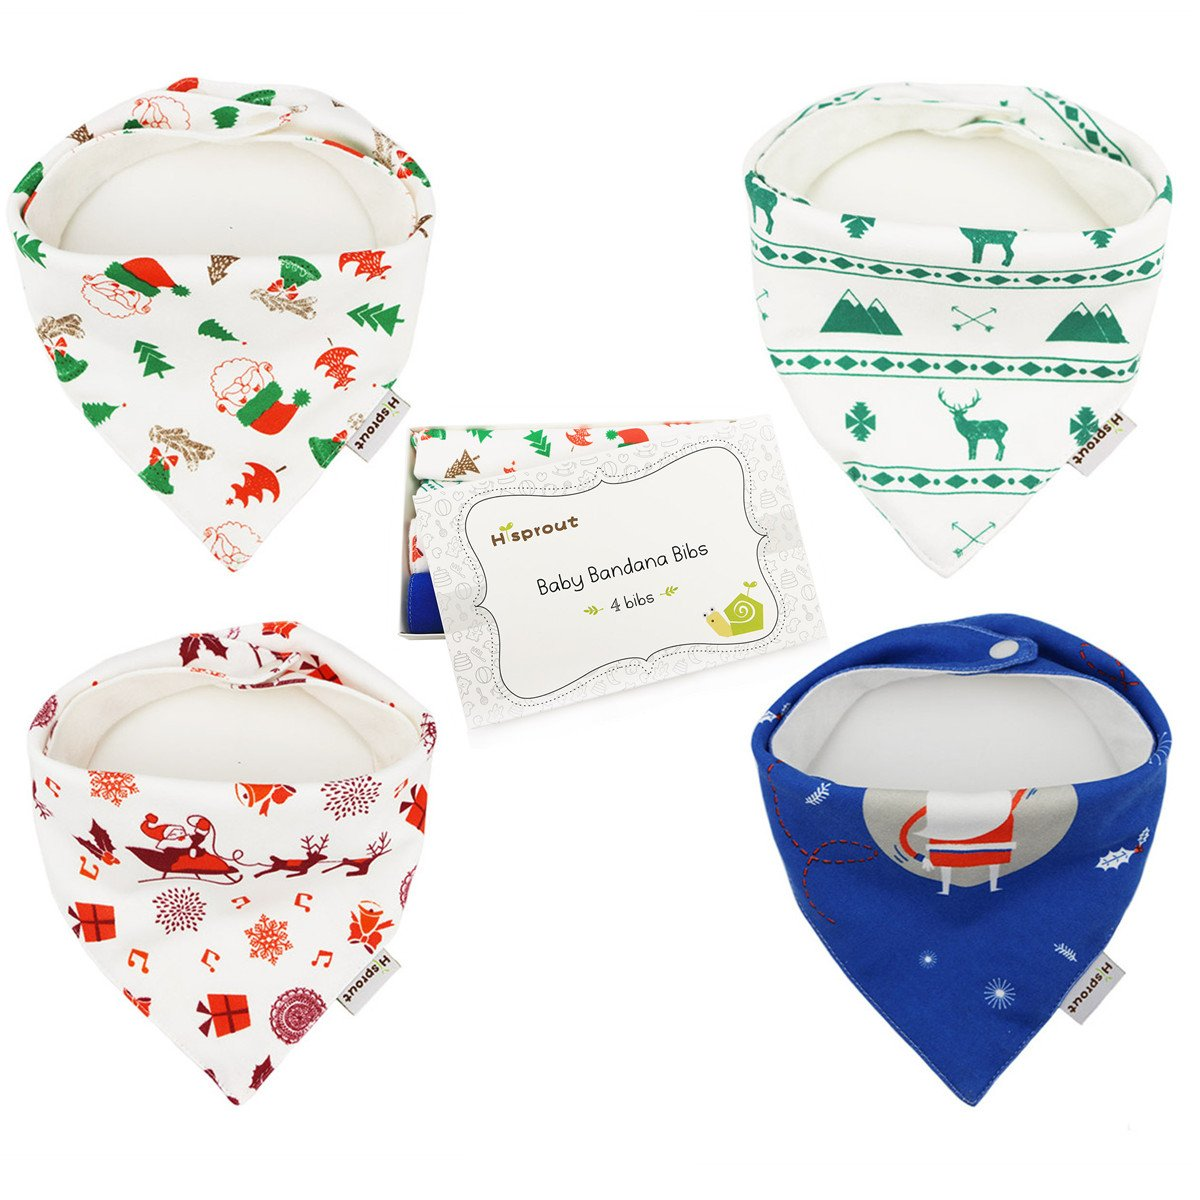 Adjustable Double Snaps Hi Sprout Baby Bandana Drool Bibs 4 Pack Christmas Gift for Girls and Boys Absorbent 100/% Cotton